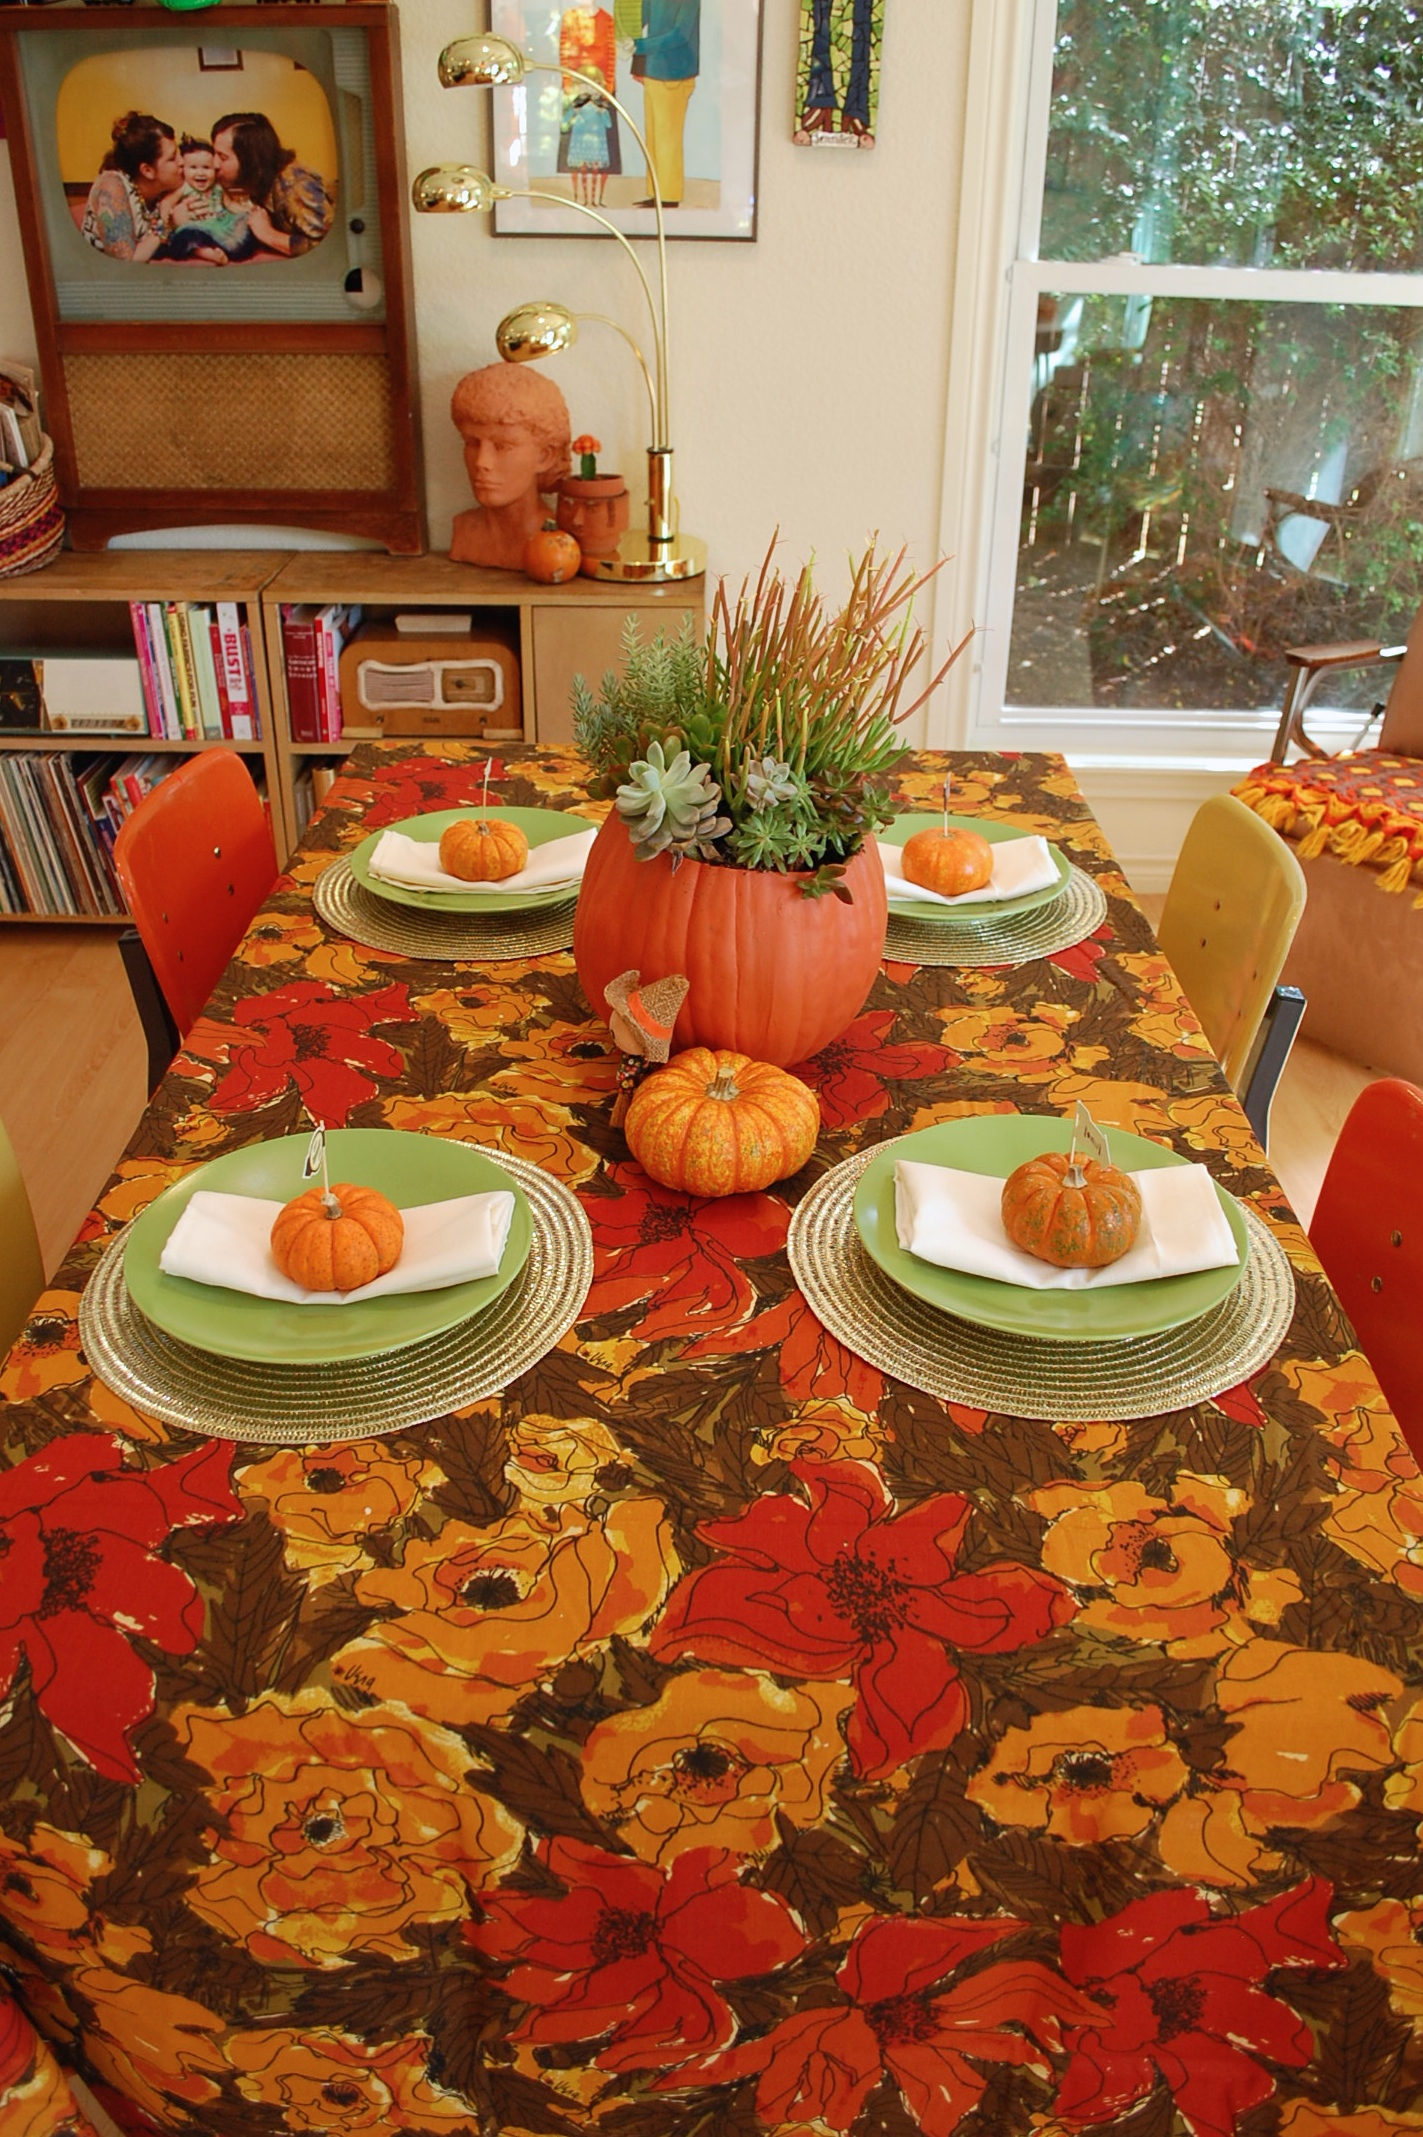 Thanksgiving Table Setting Ideas - A Wonderful Thought